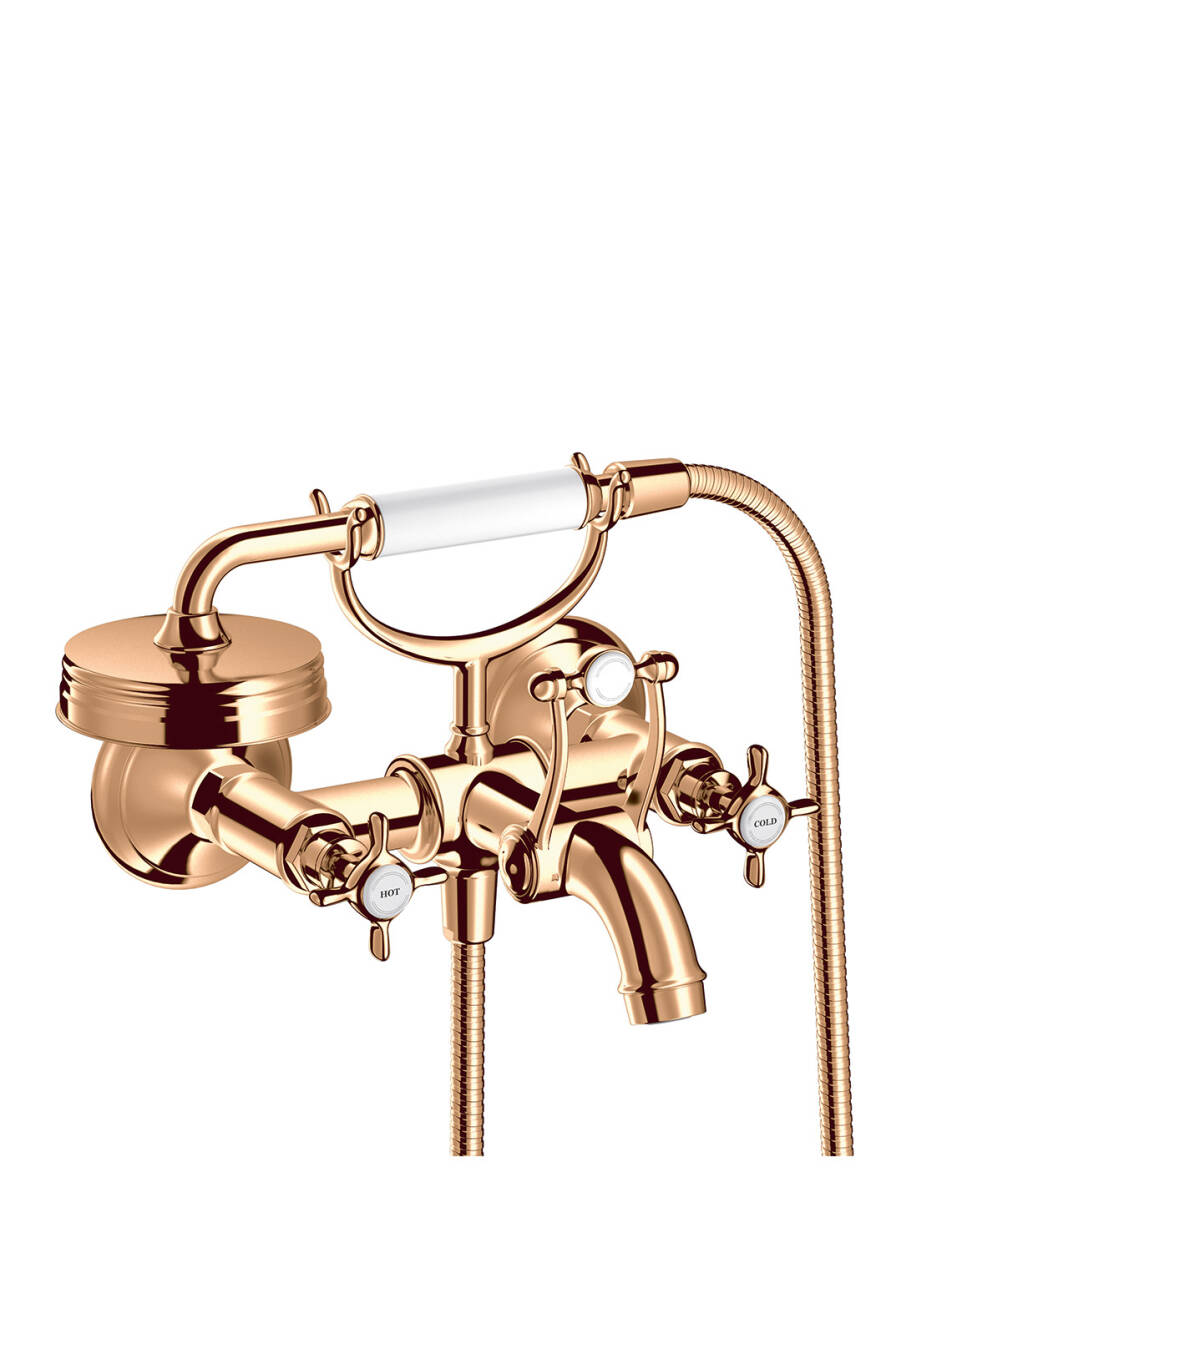 2-handle bath mixer for exposed installation with cross handles, Polished Bronze, 16540130